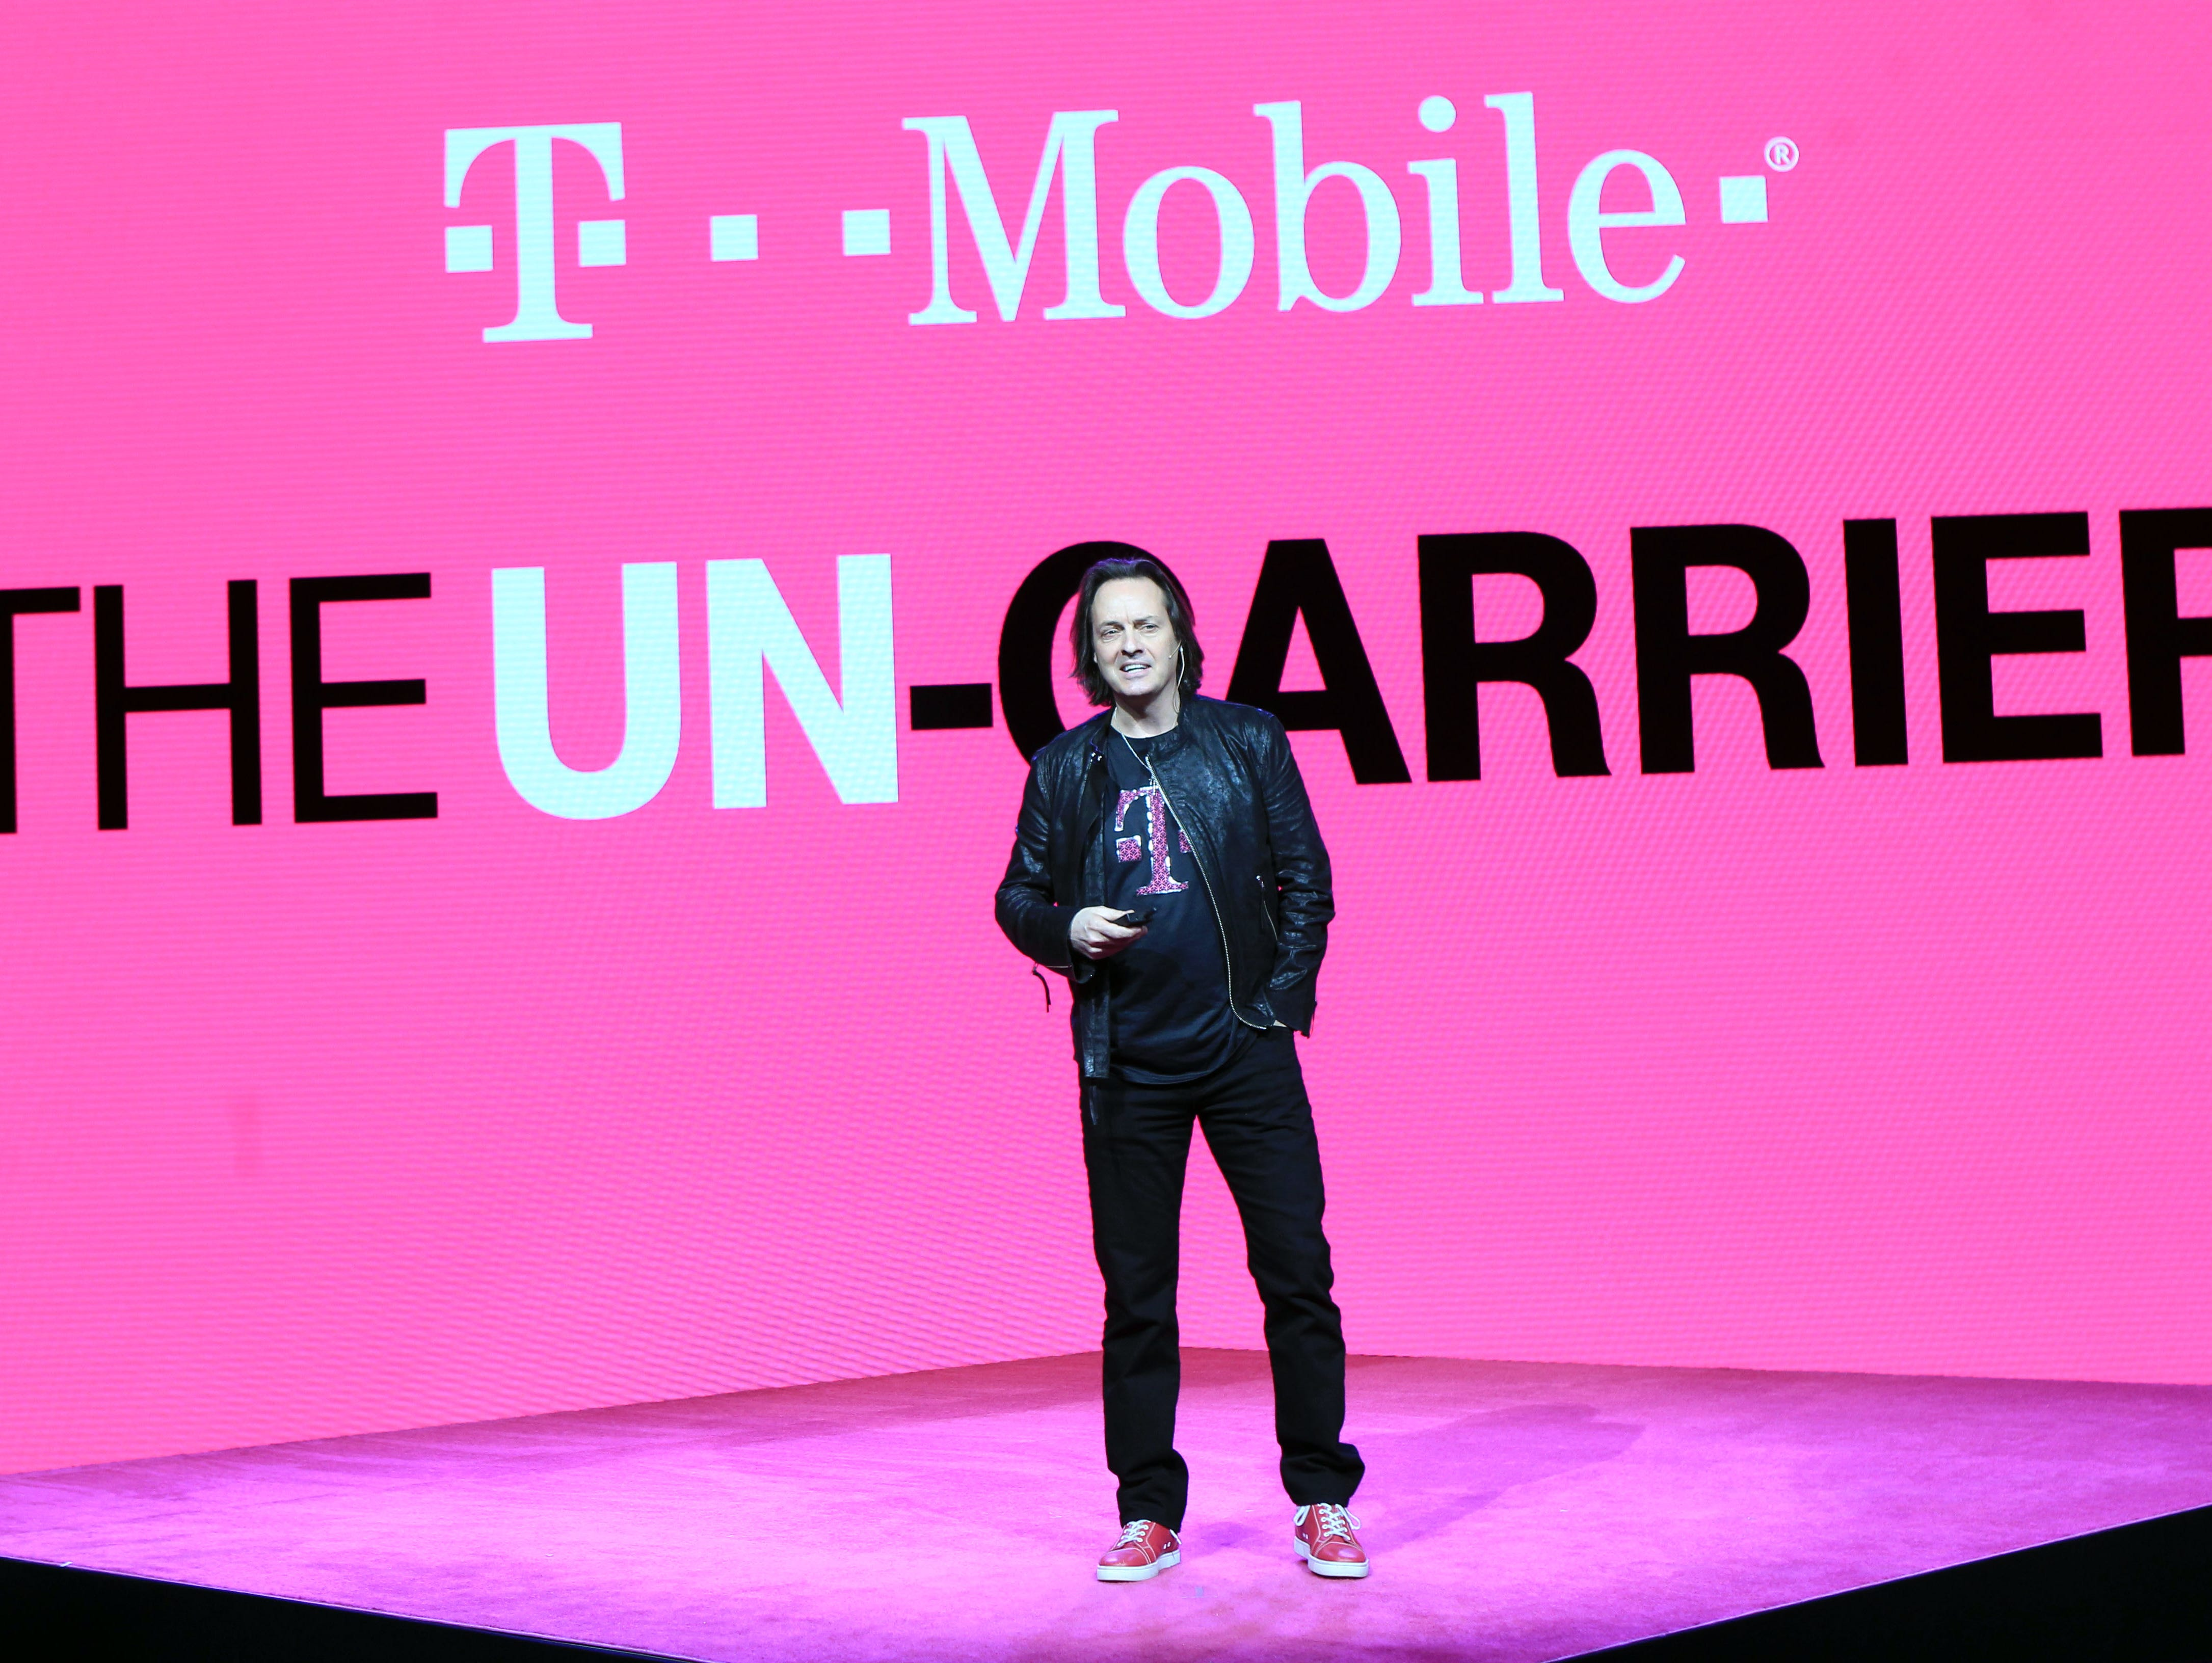 John Legere CEP of T-Mobile announces the company's new plans  on March 18, 2015 in New York City.